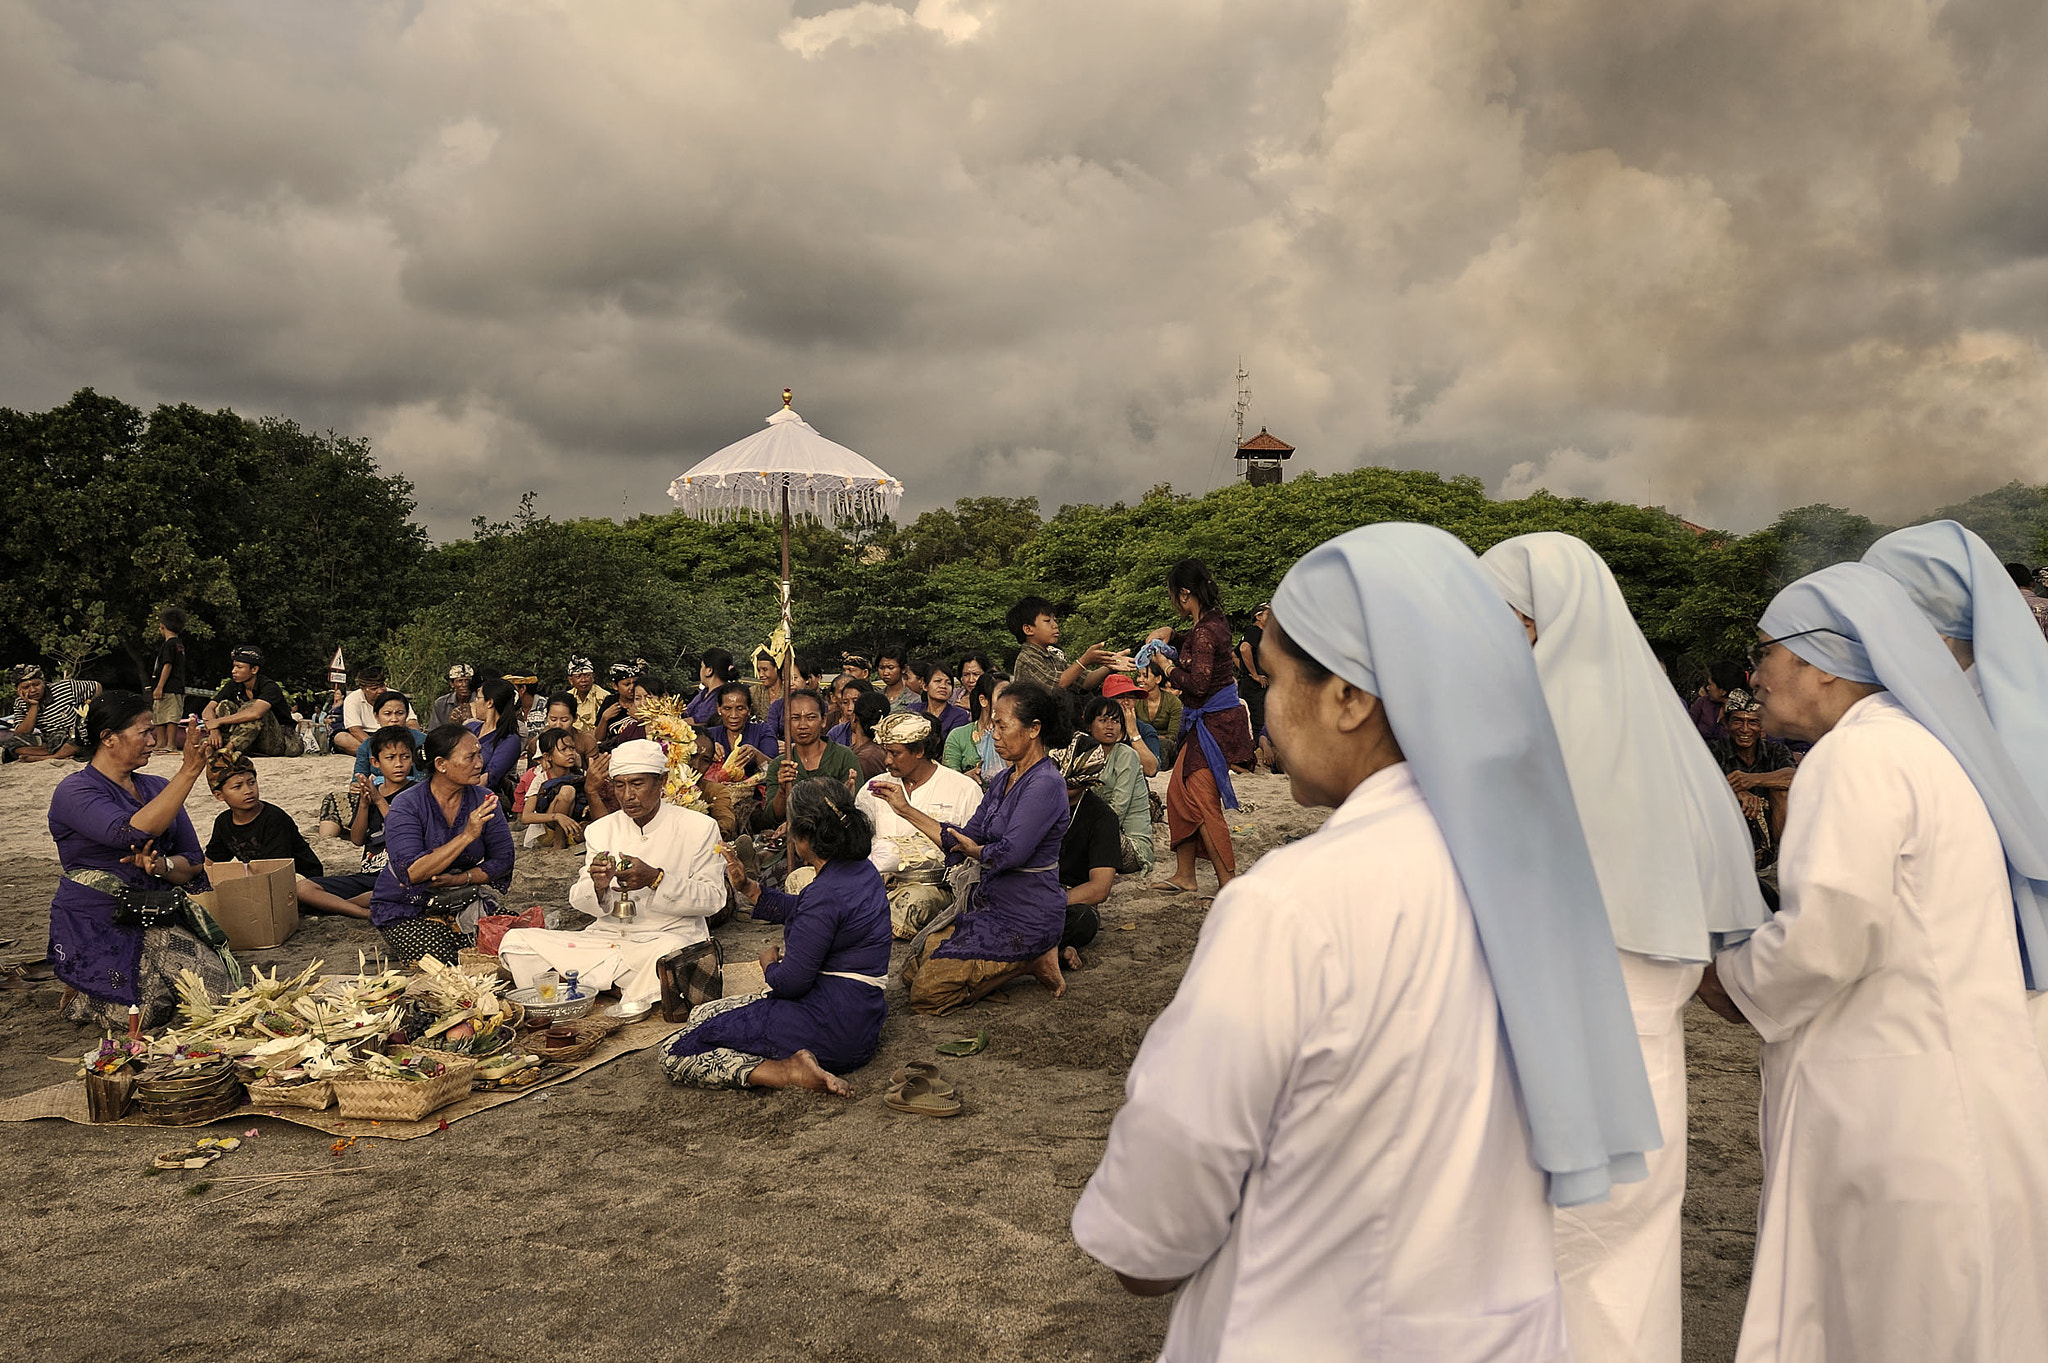 Photograph A Balinese Funeral  by toonman blchin on 500px